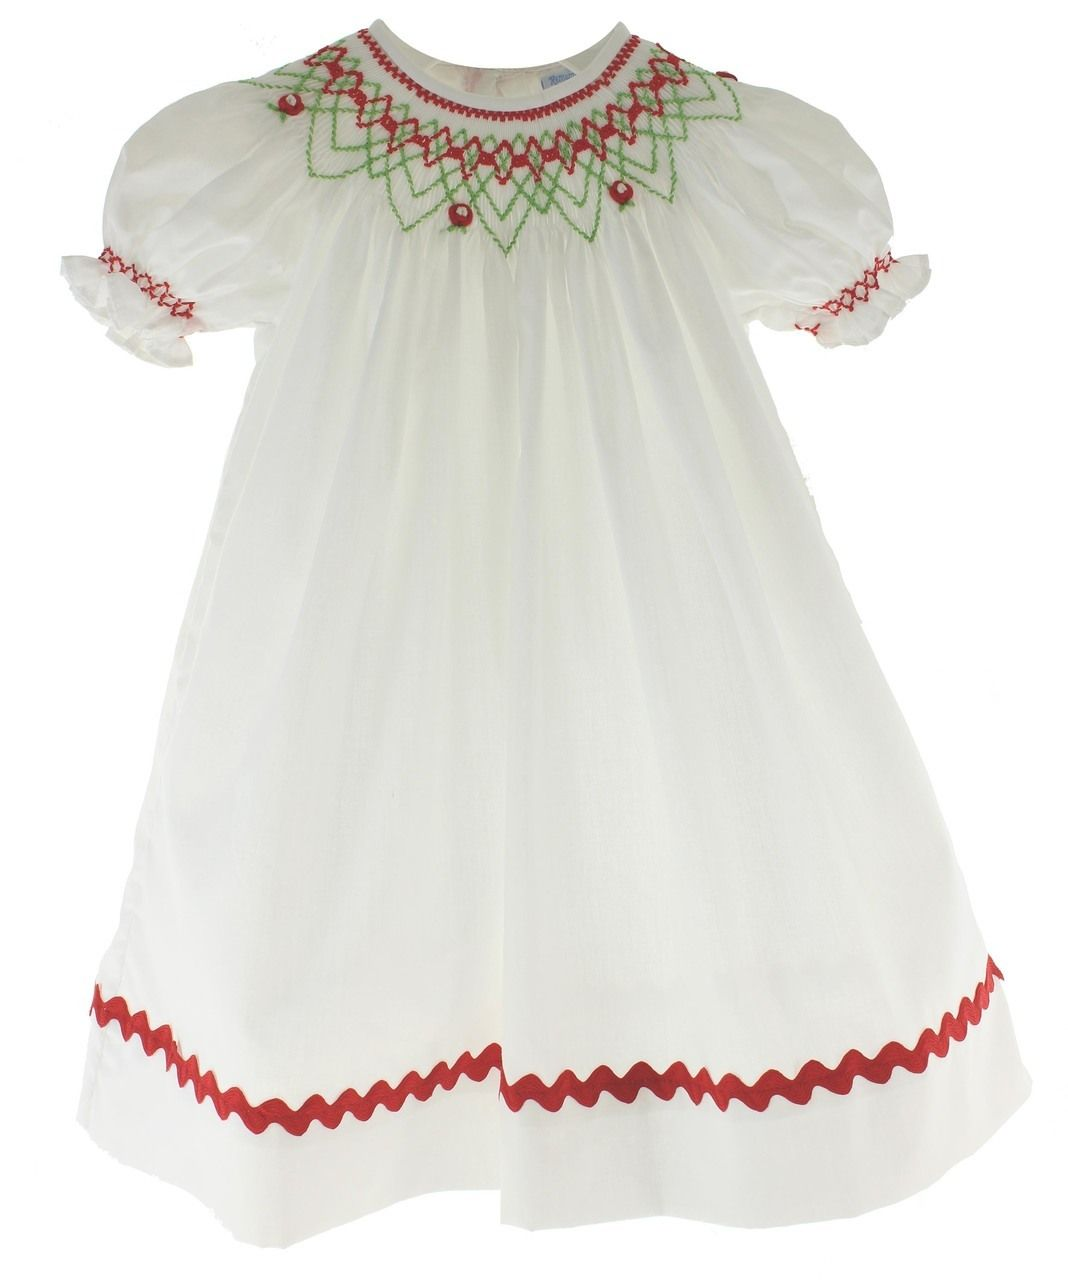 Girls Smocked Christmas Dress White with Red and Green Smocking